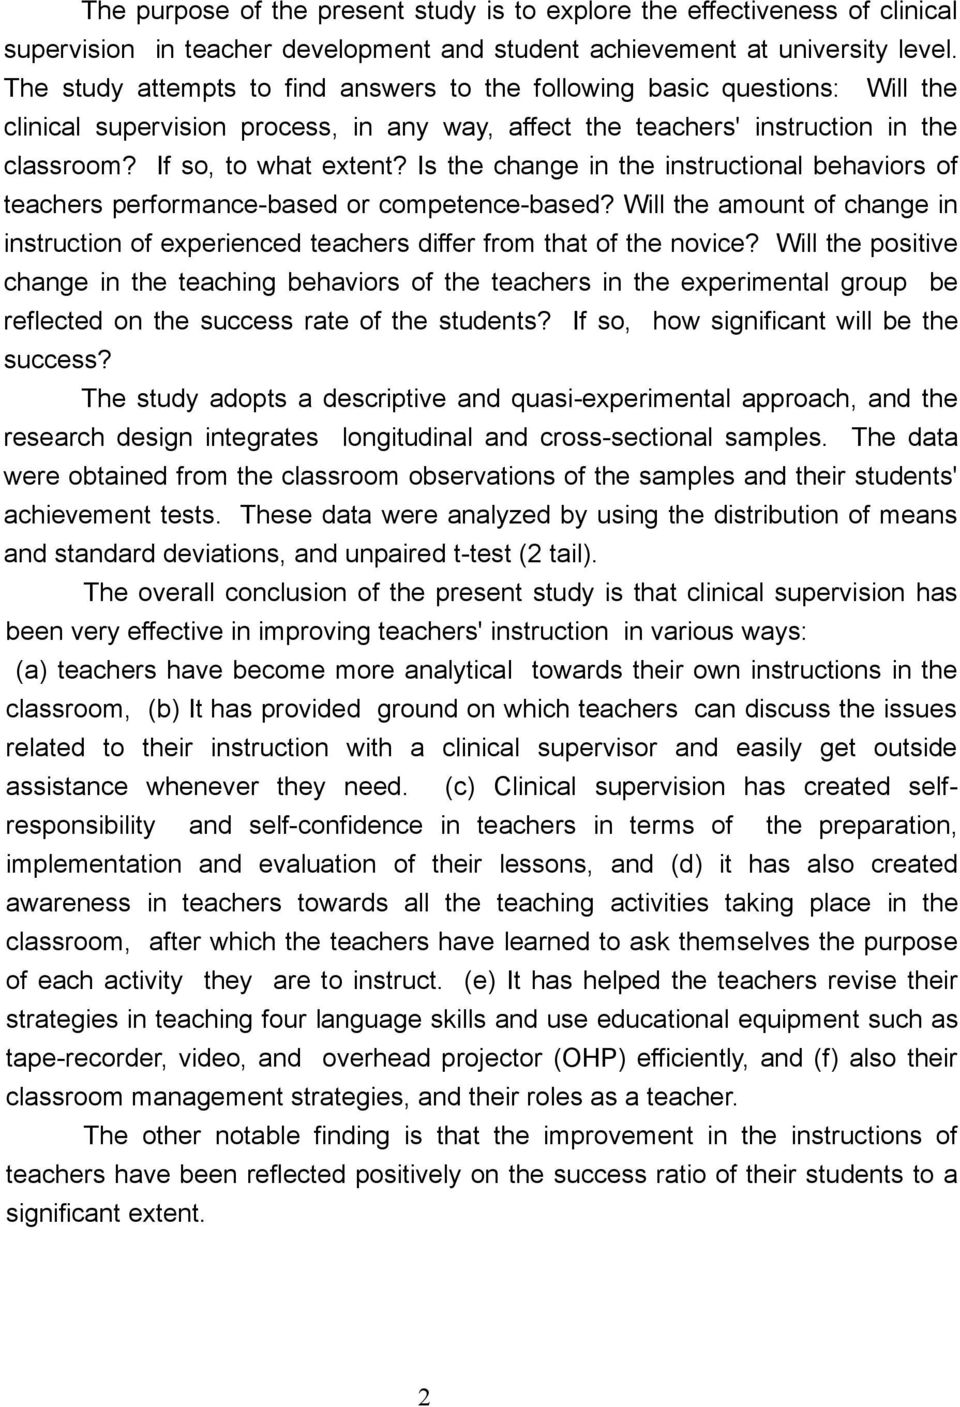 Is the change in the instructional behaviors of teachers performance-based or competence-based? Will the amount of change in instruction of experienced teachers differ from that of the novice?